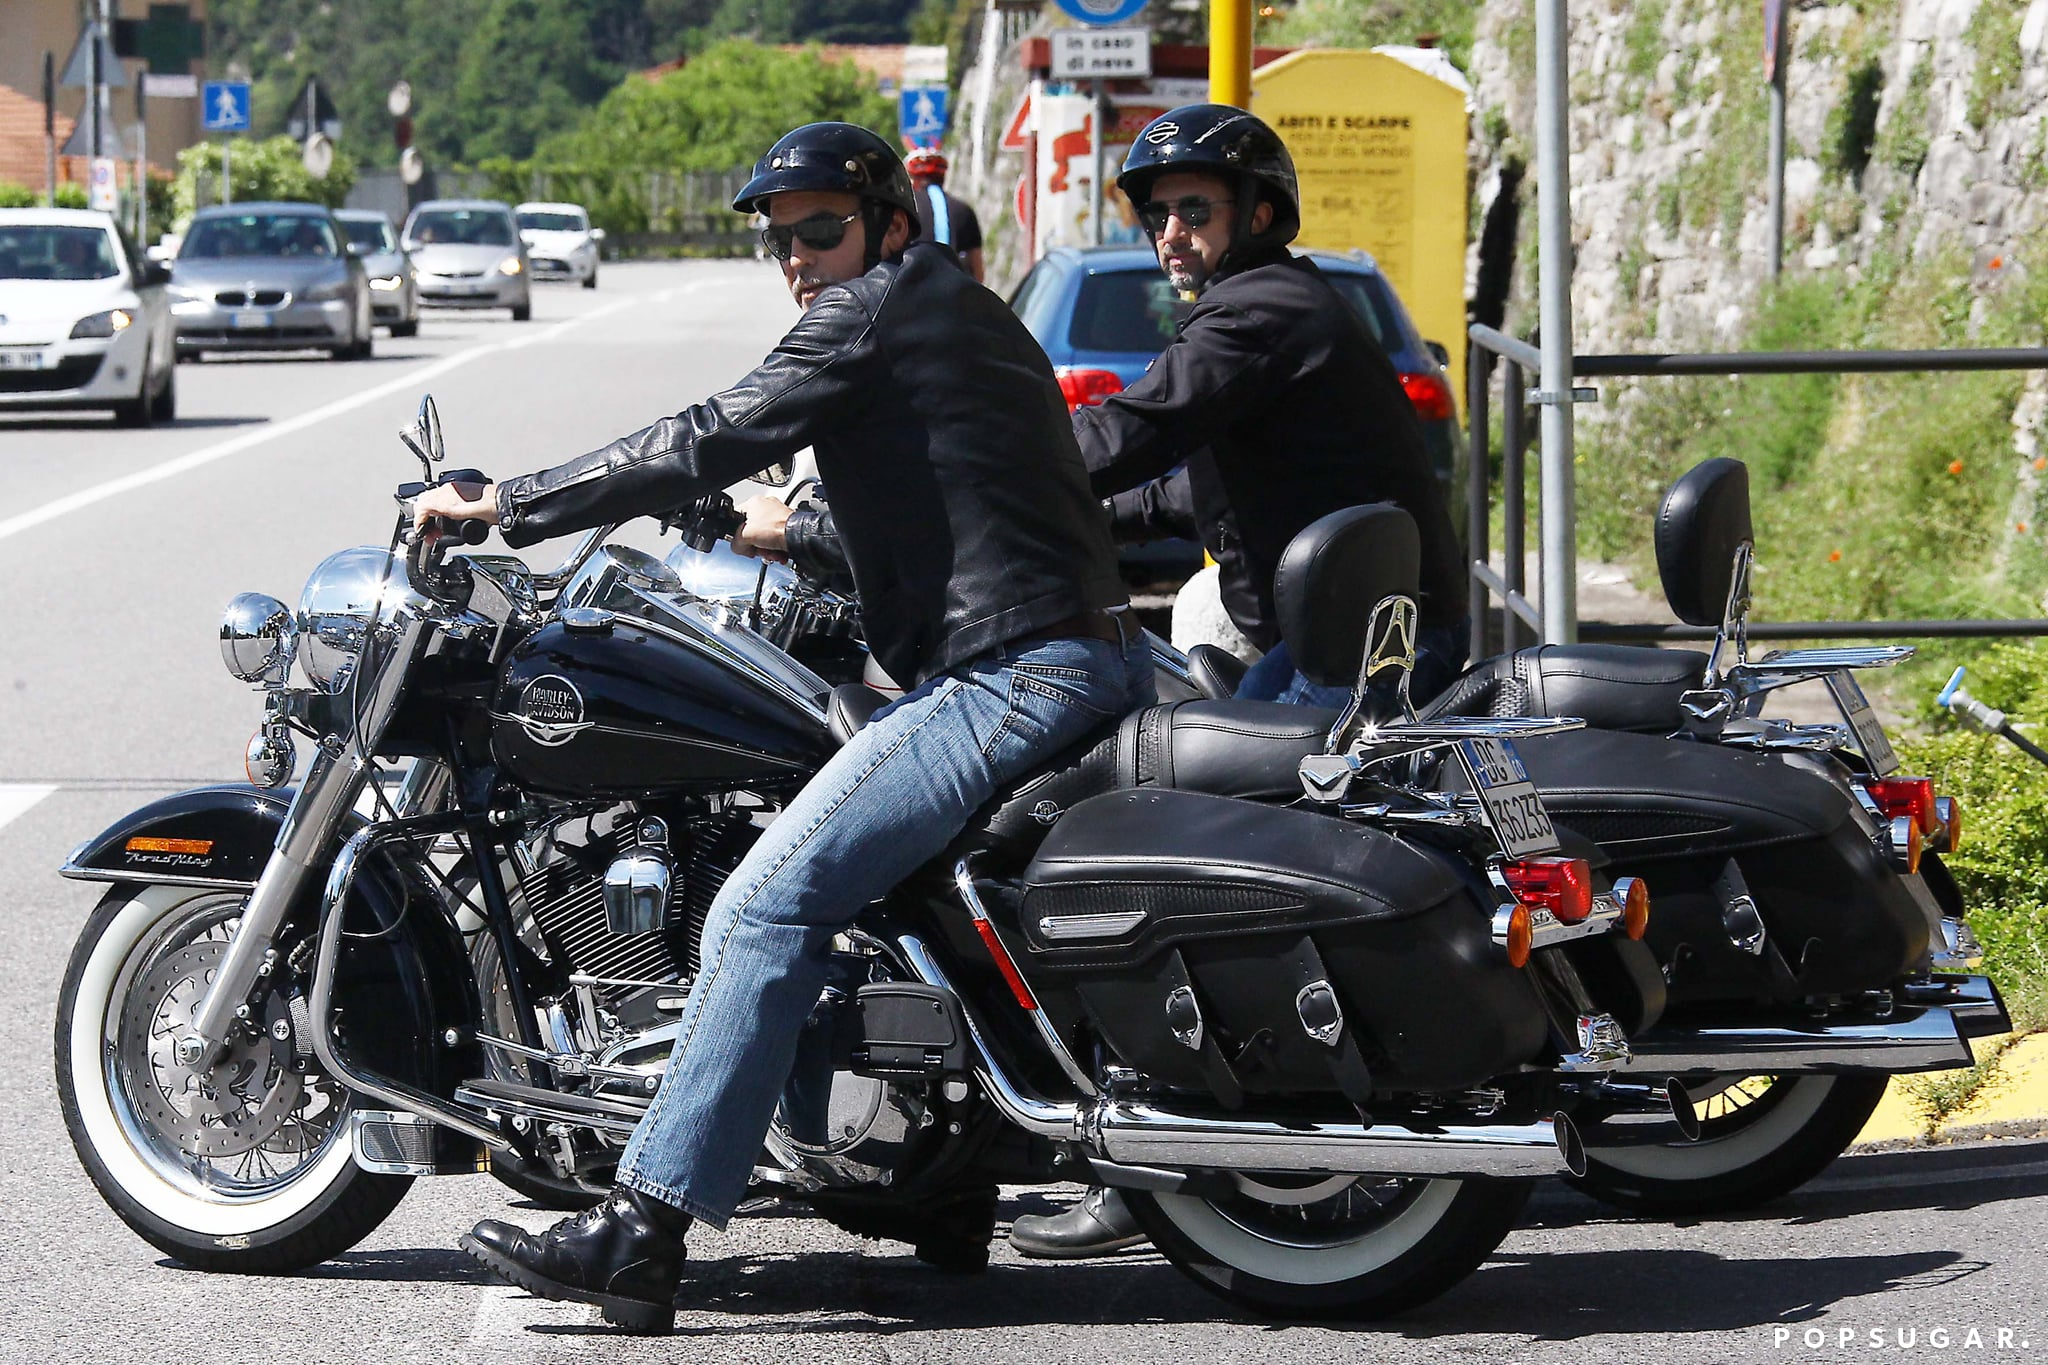 George Clooney and Matt Damon Have a Boys Weekend in Lake Como